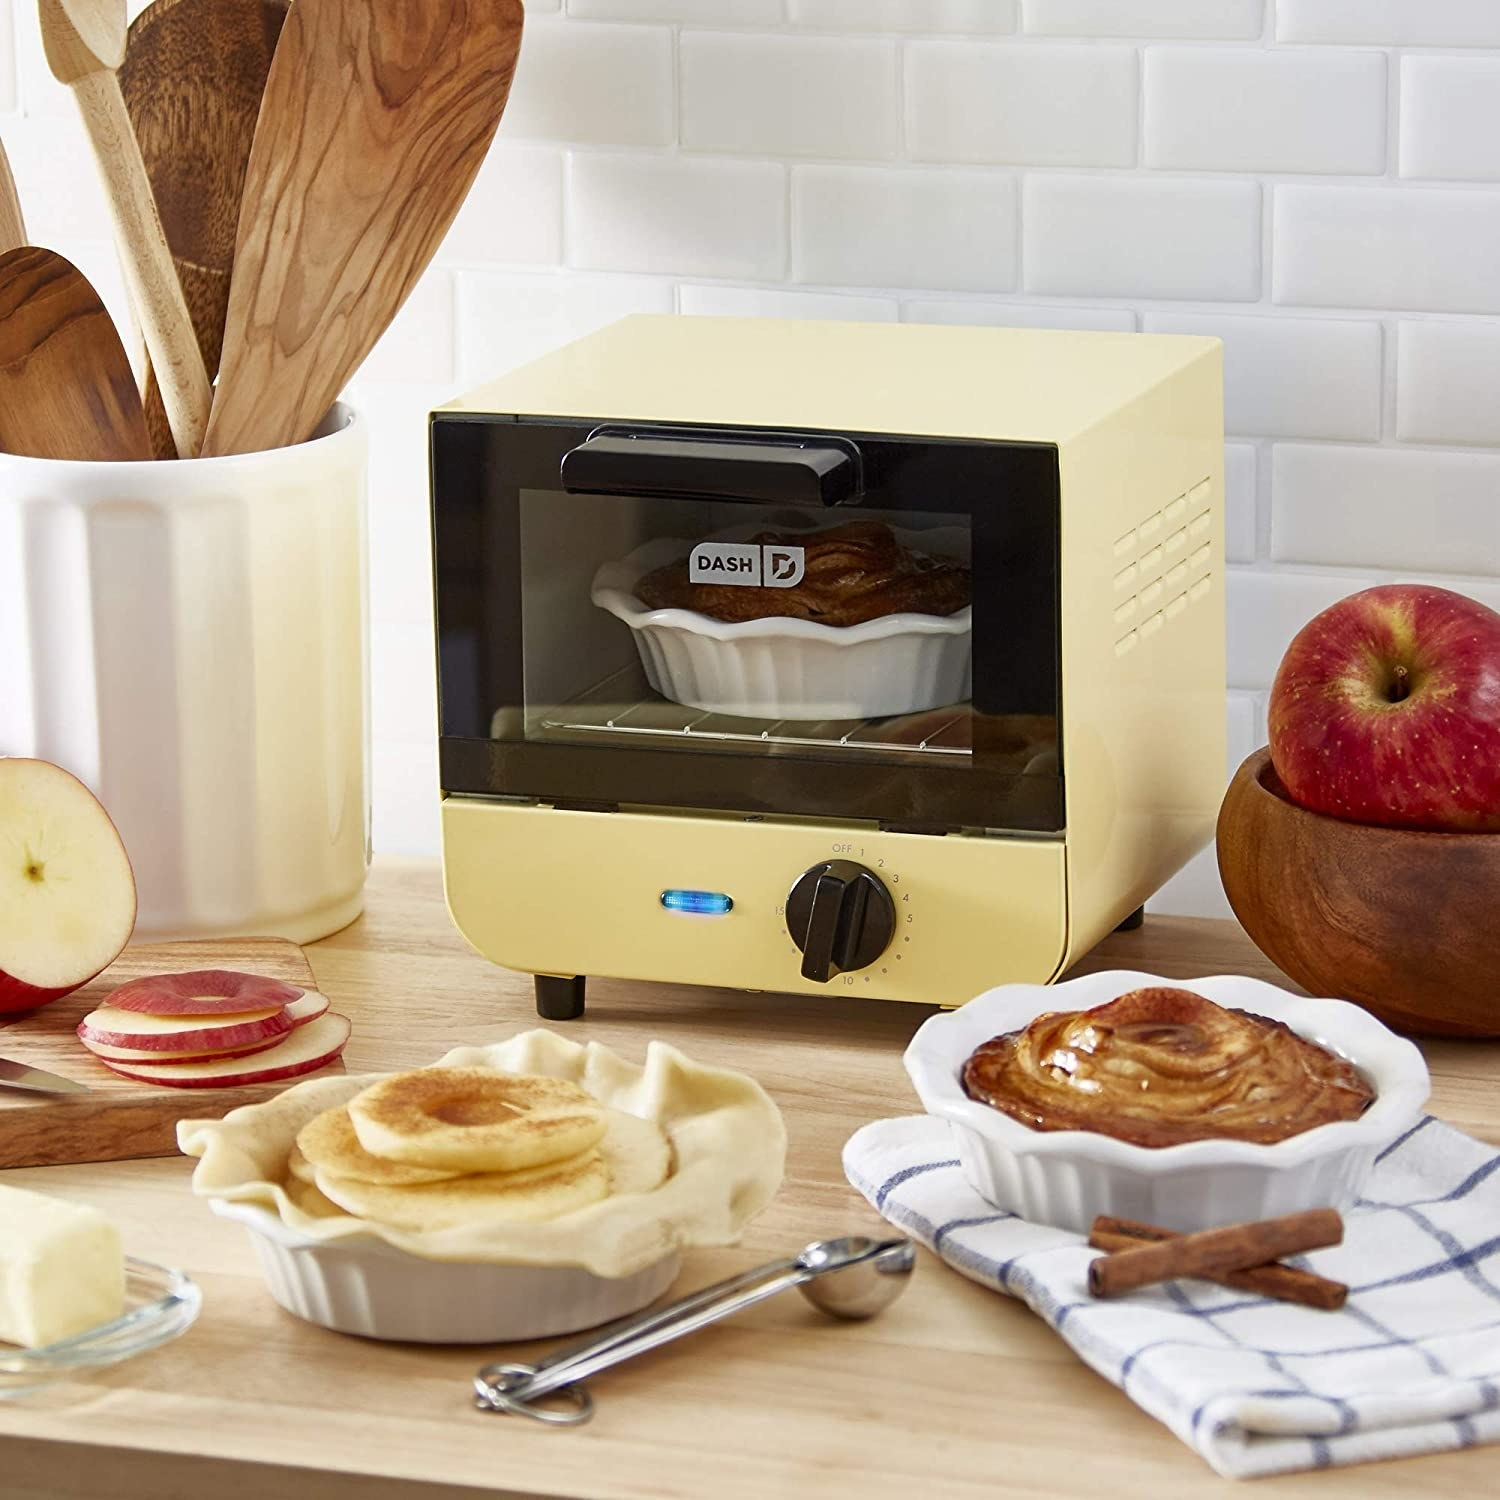 A small toaster oven with a pie cooking in it